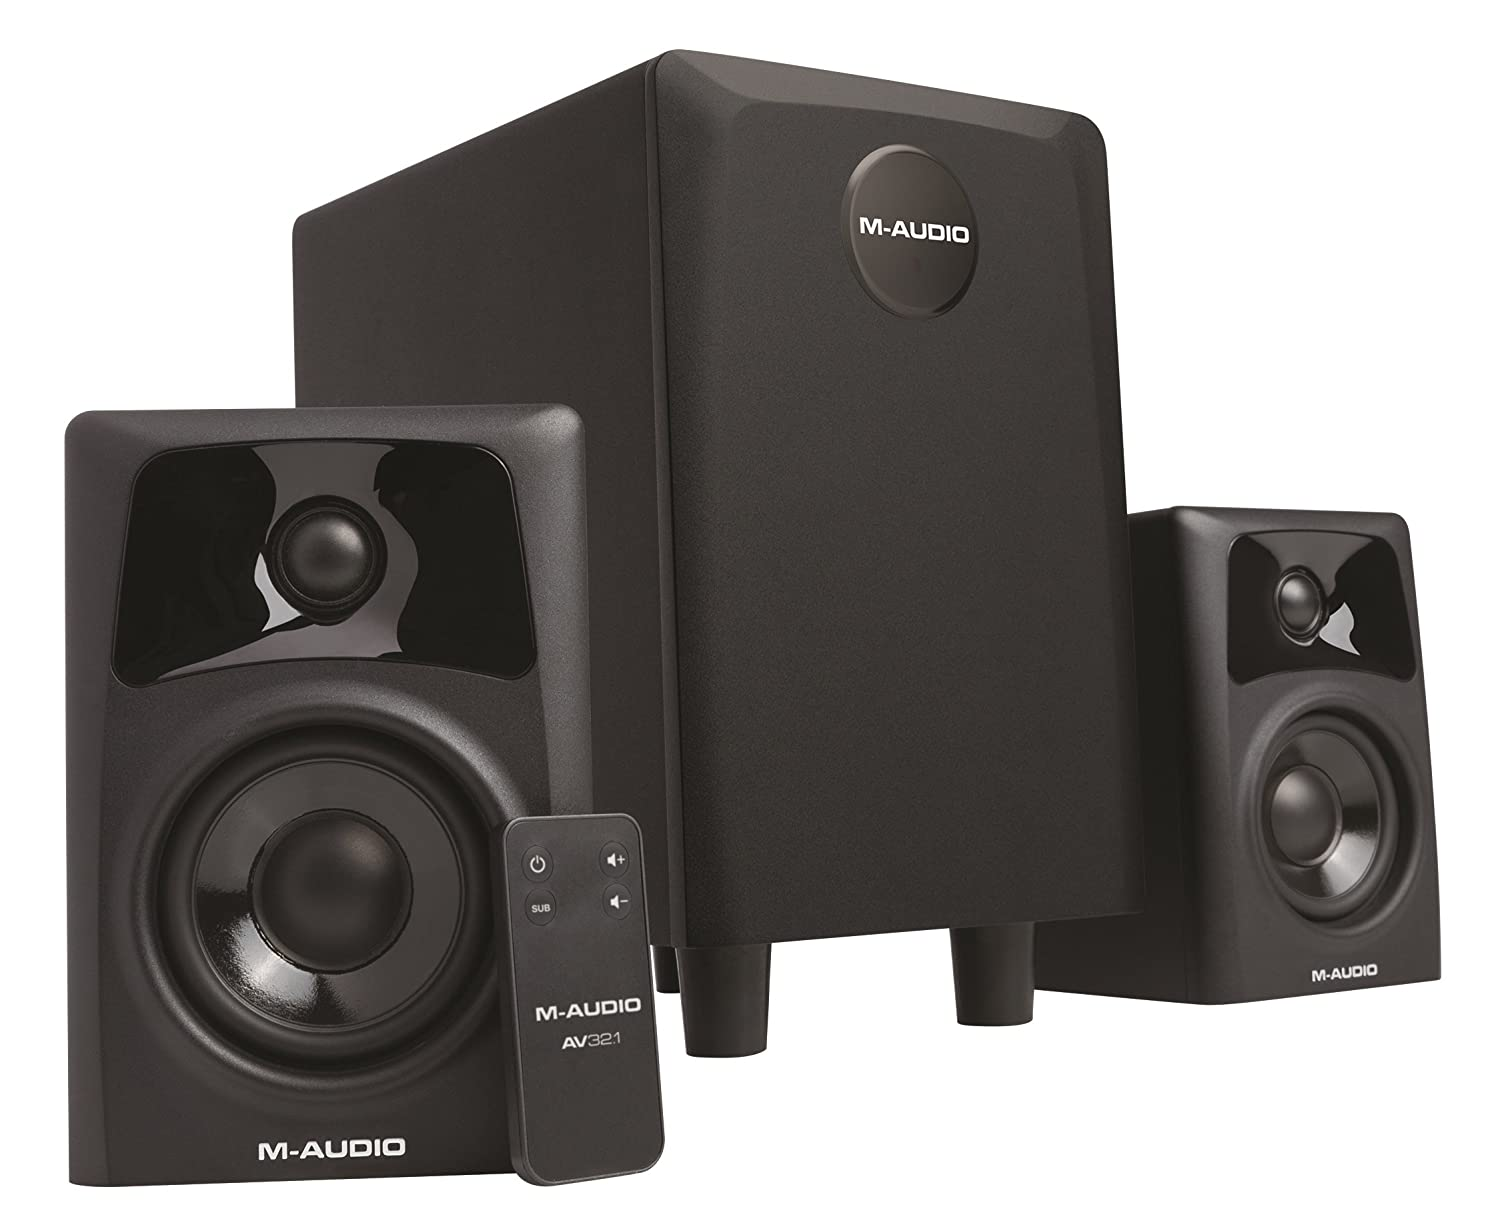 M-Audio AV32.1 | Professional Desktop Multimedia Audio-Monitor Pair & Subwoofer (3-inch Woofer / 6.5-inch Subwoofer)